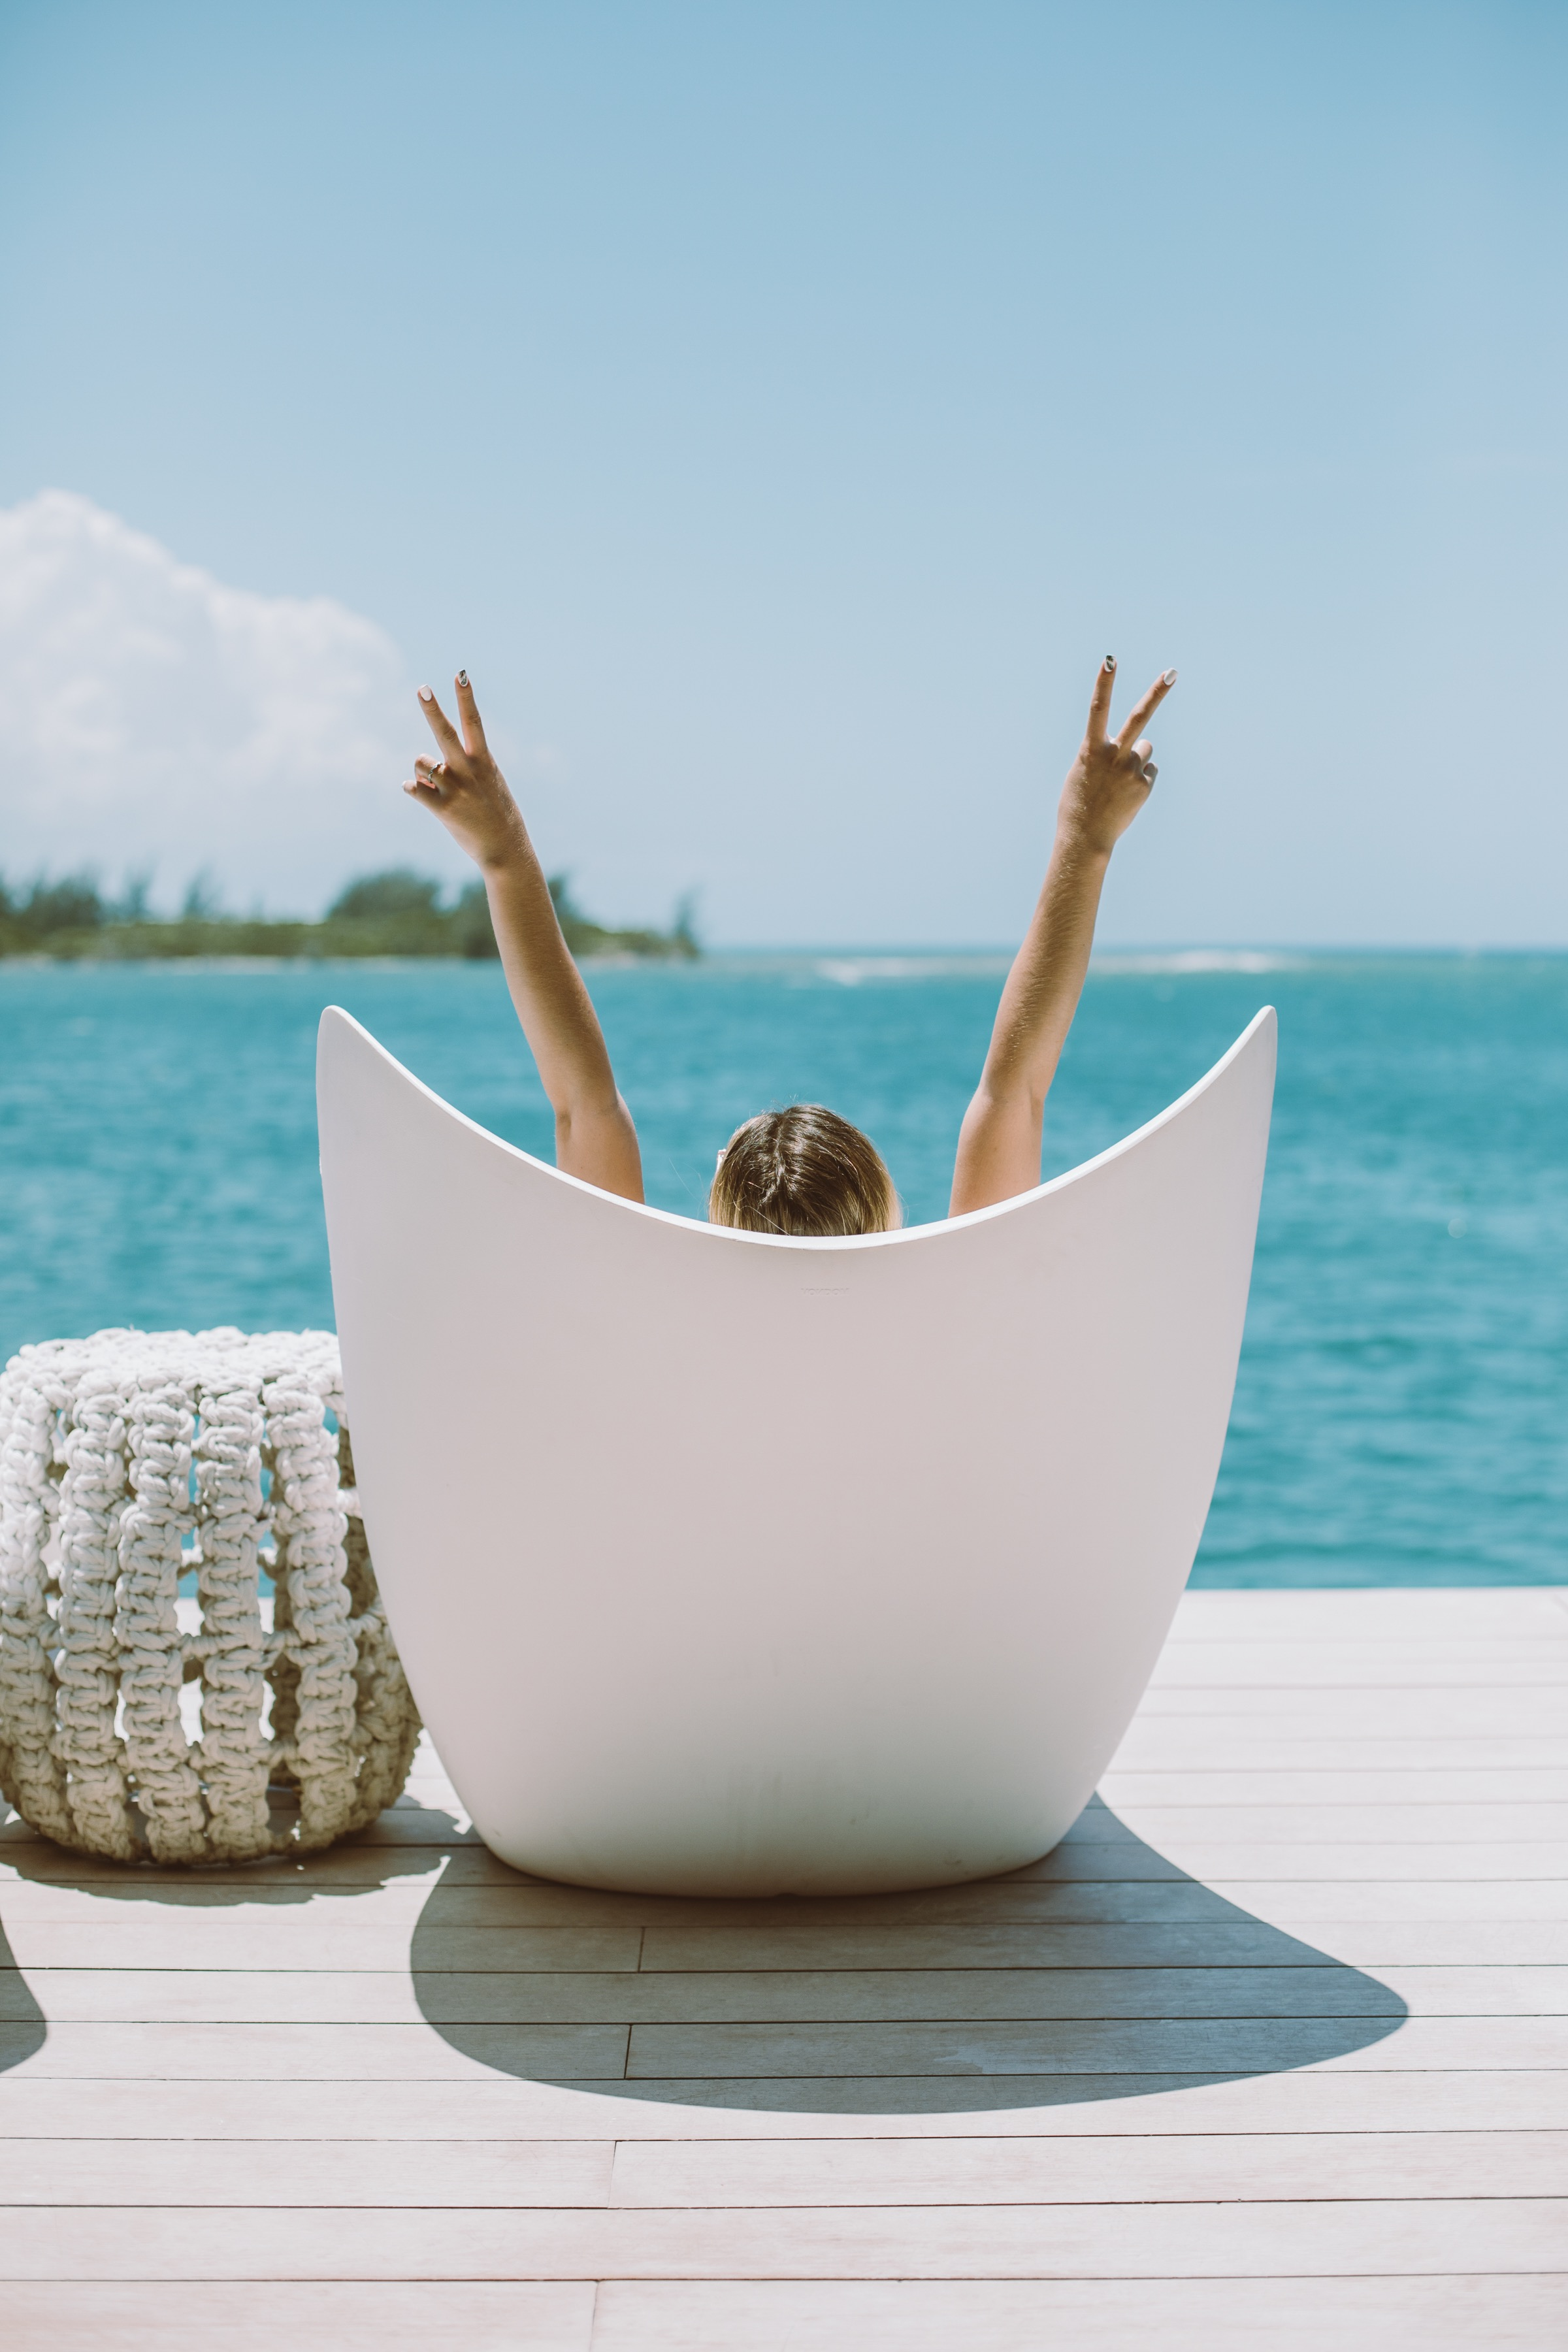 Houston lifestyle blogger Uptown with Elly Brown shares what to do and where to go for your 10 Year Anniversary Vacation. Click here for more!